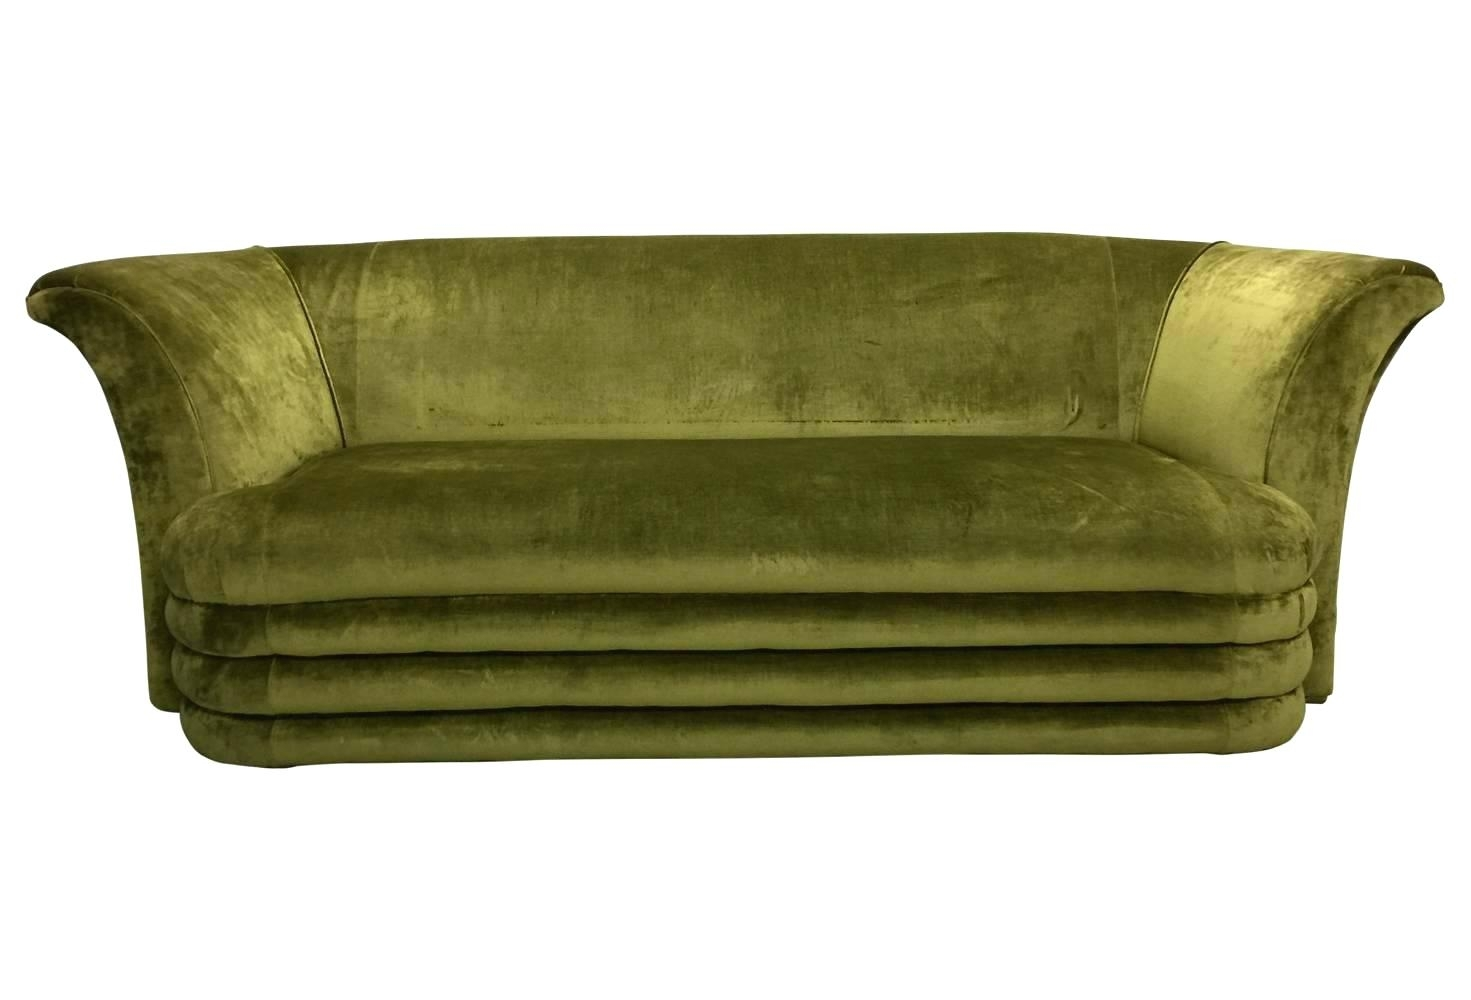 Modern Art Deco Furniture Mid Century Modern Art Inspired Chartreuse Intended For Art Deco Sofas (View 8 of 10)